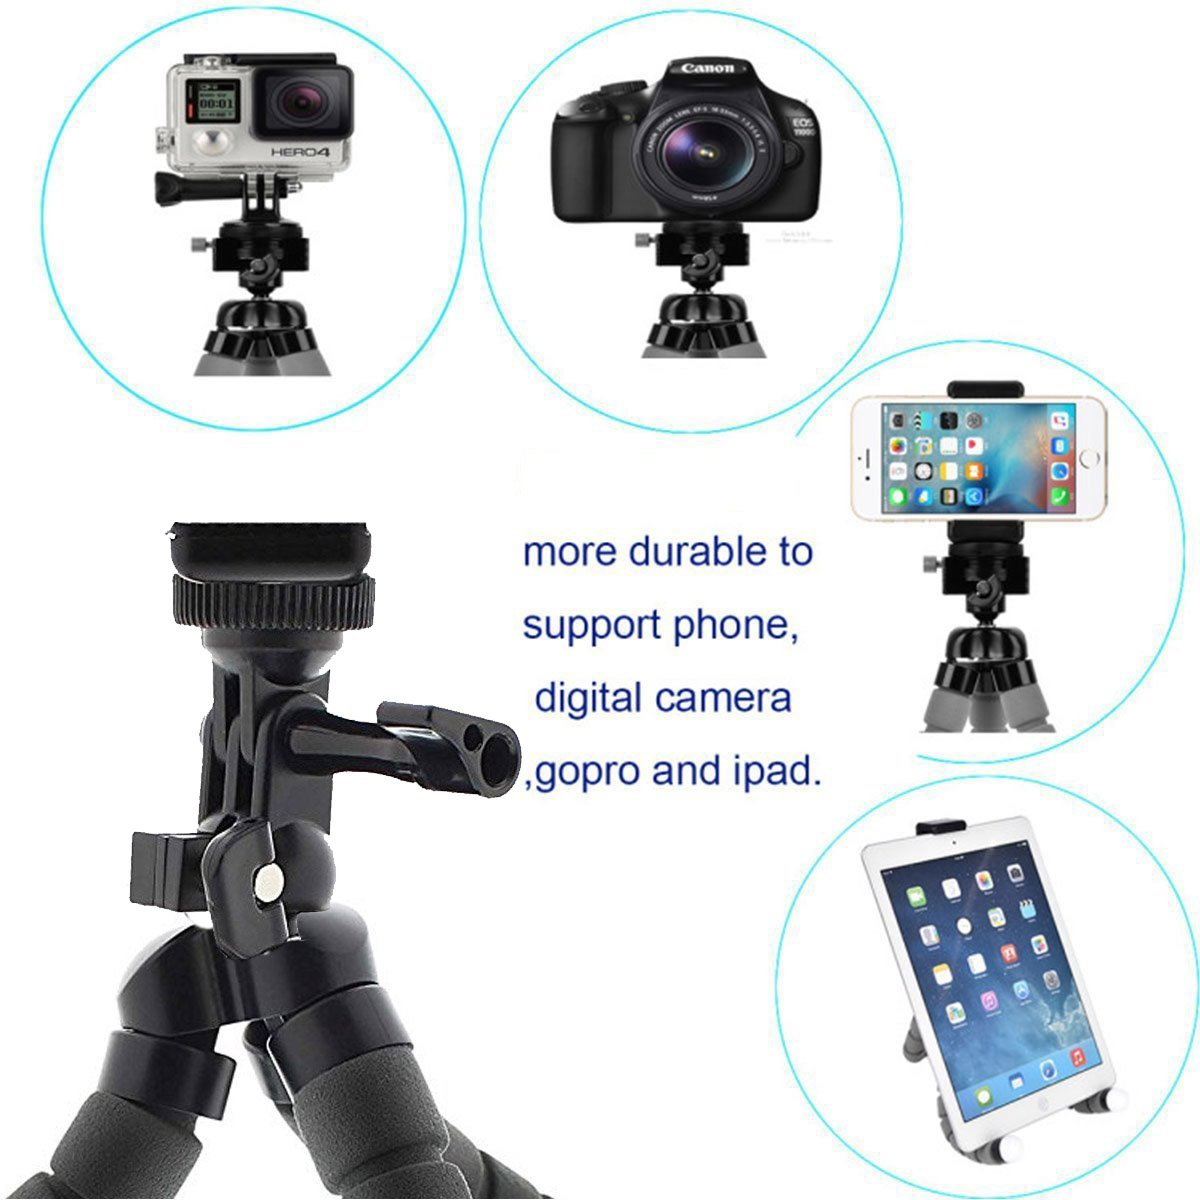 Phone Tripod, Anconic flexible cell phone Tripod with Remote for Iphone& Android Phone, Camera, and Gopro[UPGRADED] by ZANCONIC (Image #6)